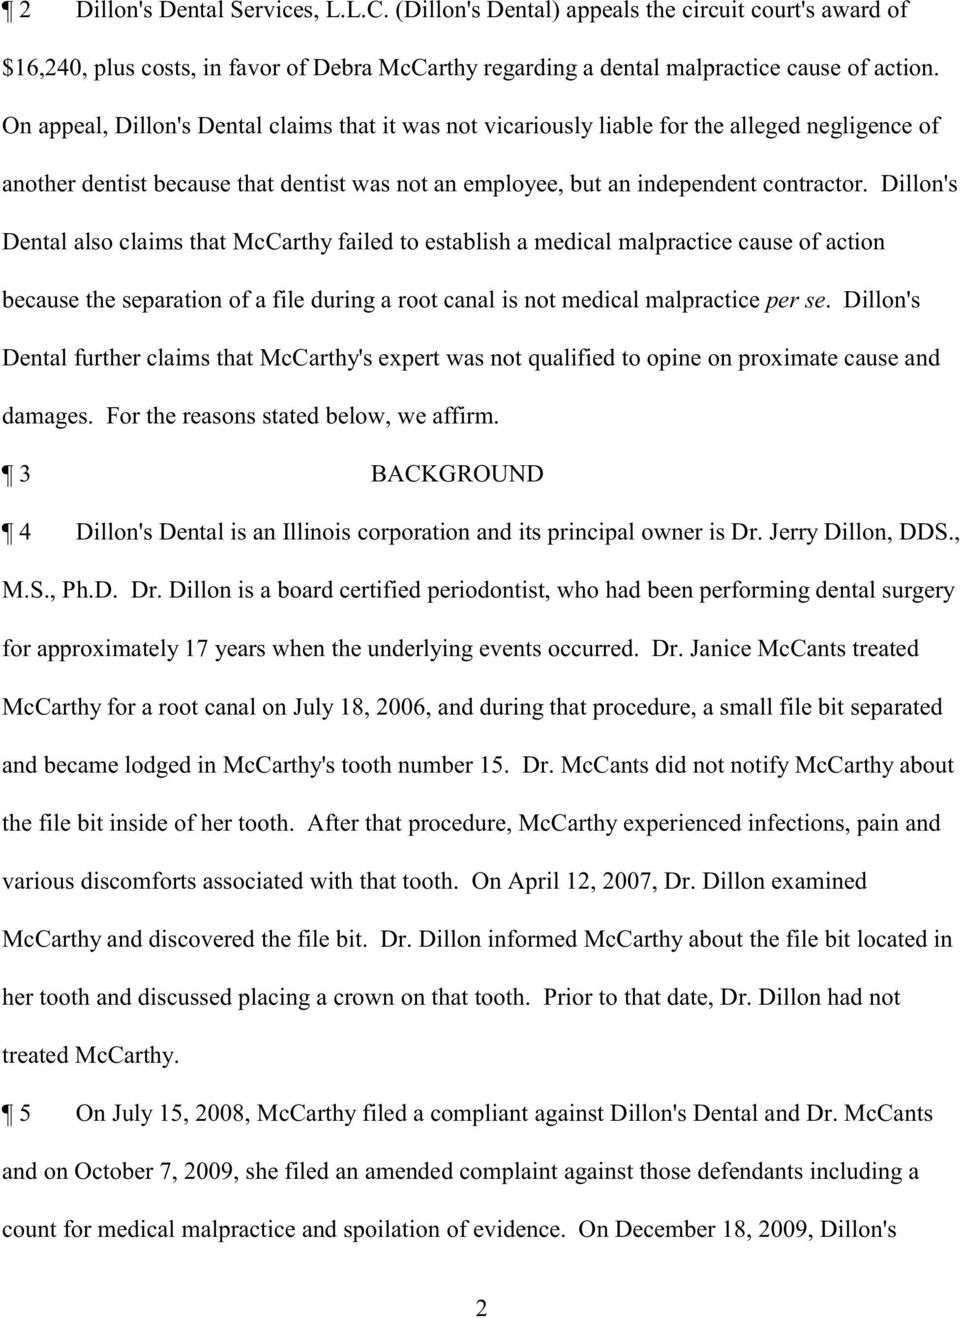 Dillon's Dental also claims that McCarthy failed to establish a medical malpractice cause of action because the separation of a file during a root canal is not medical malpractice per se.